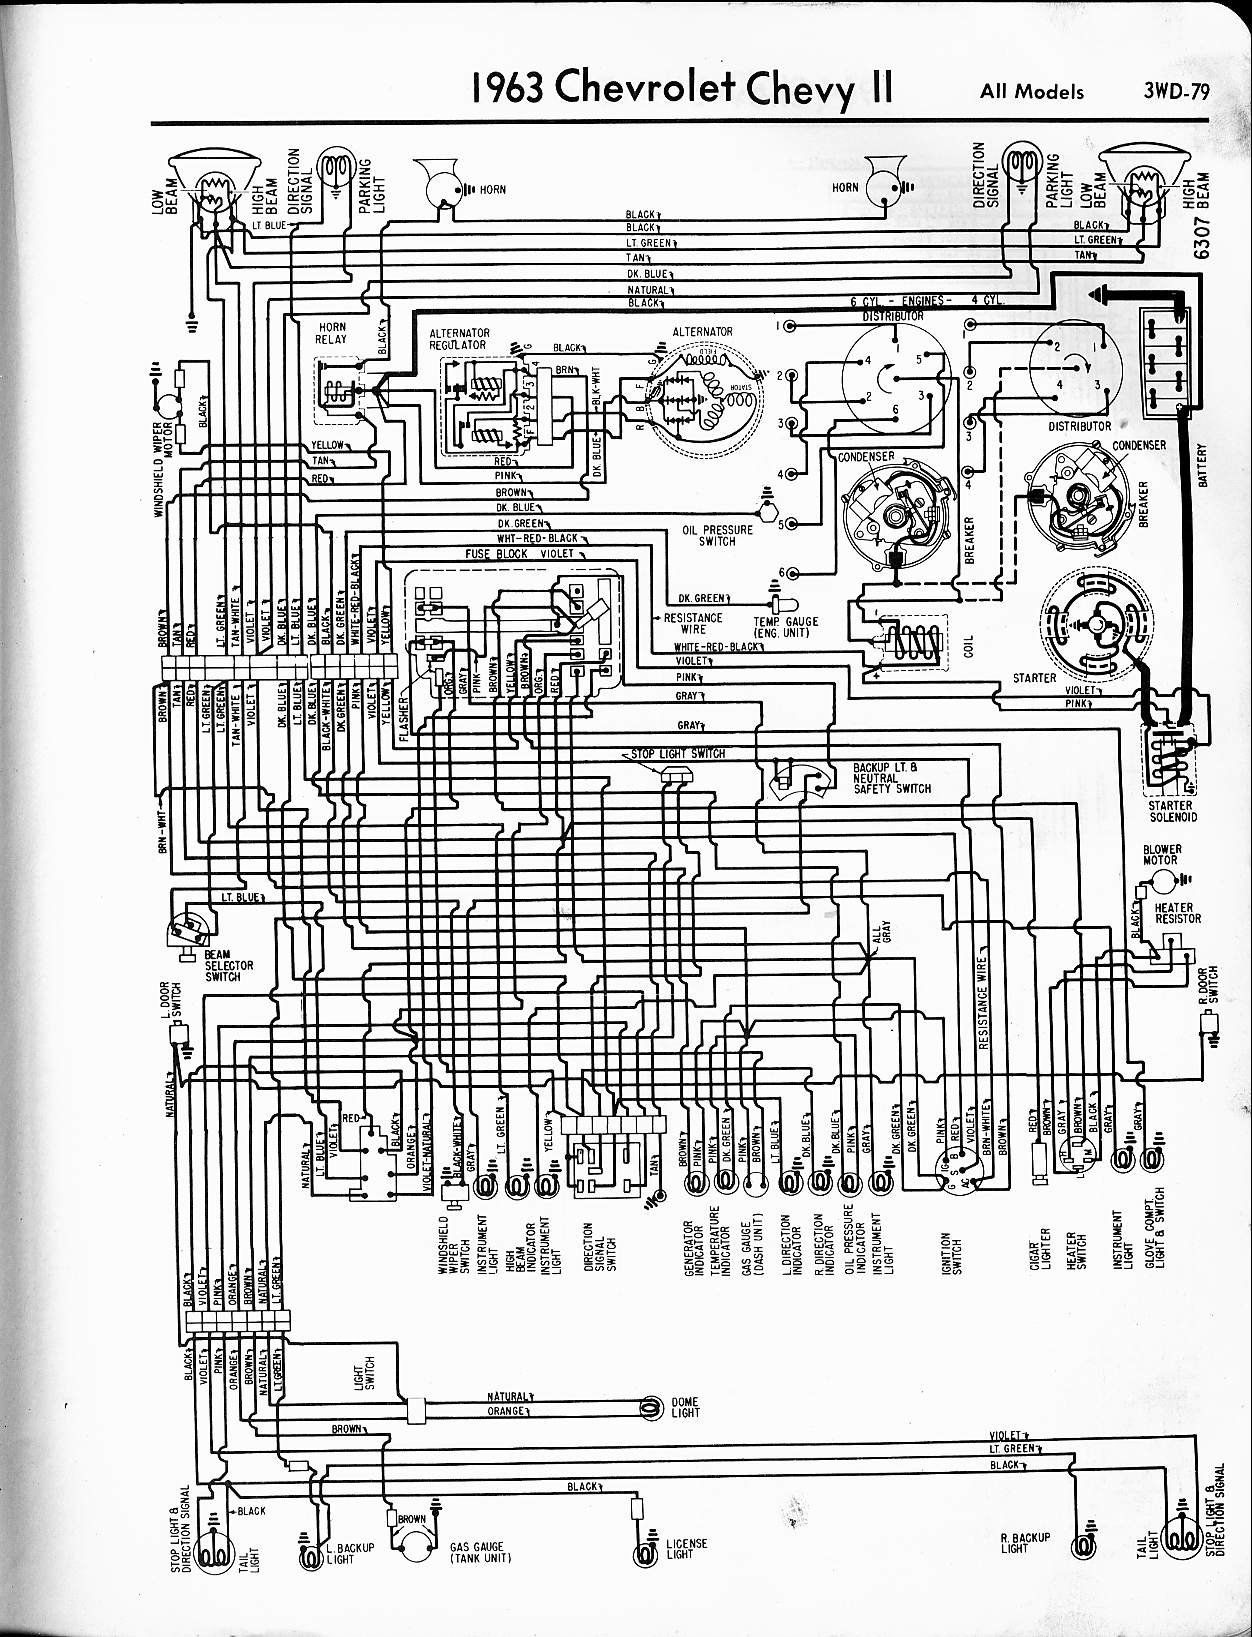 1967 1972 Chevy Truck On 1970 Chevy Nova Wiring Diagram Besides 1967 Inside 1972 Chevy Truck Wiring Diagram Ford Electric Car Ford Electric Diagram Design